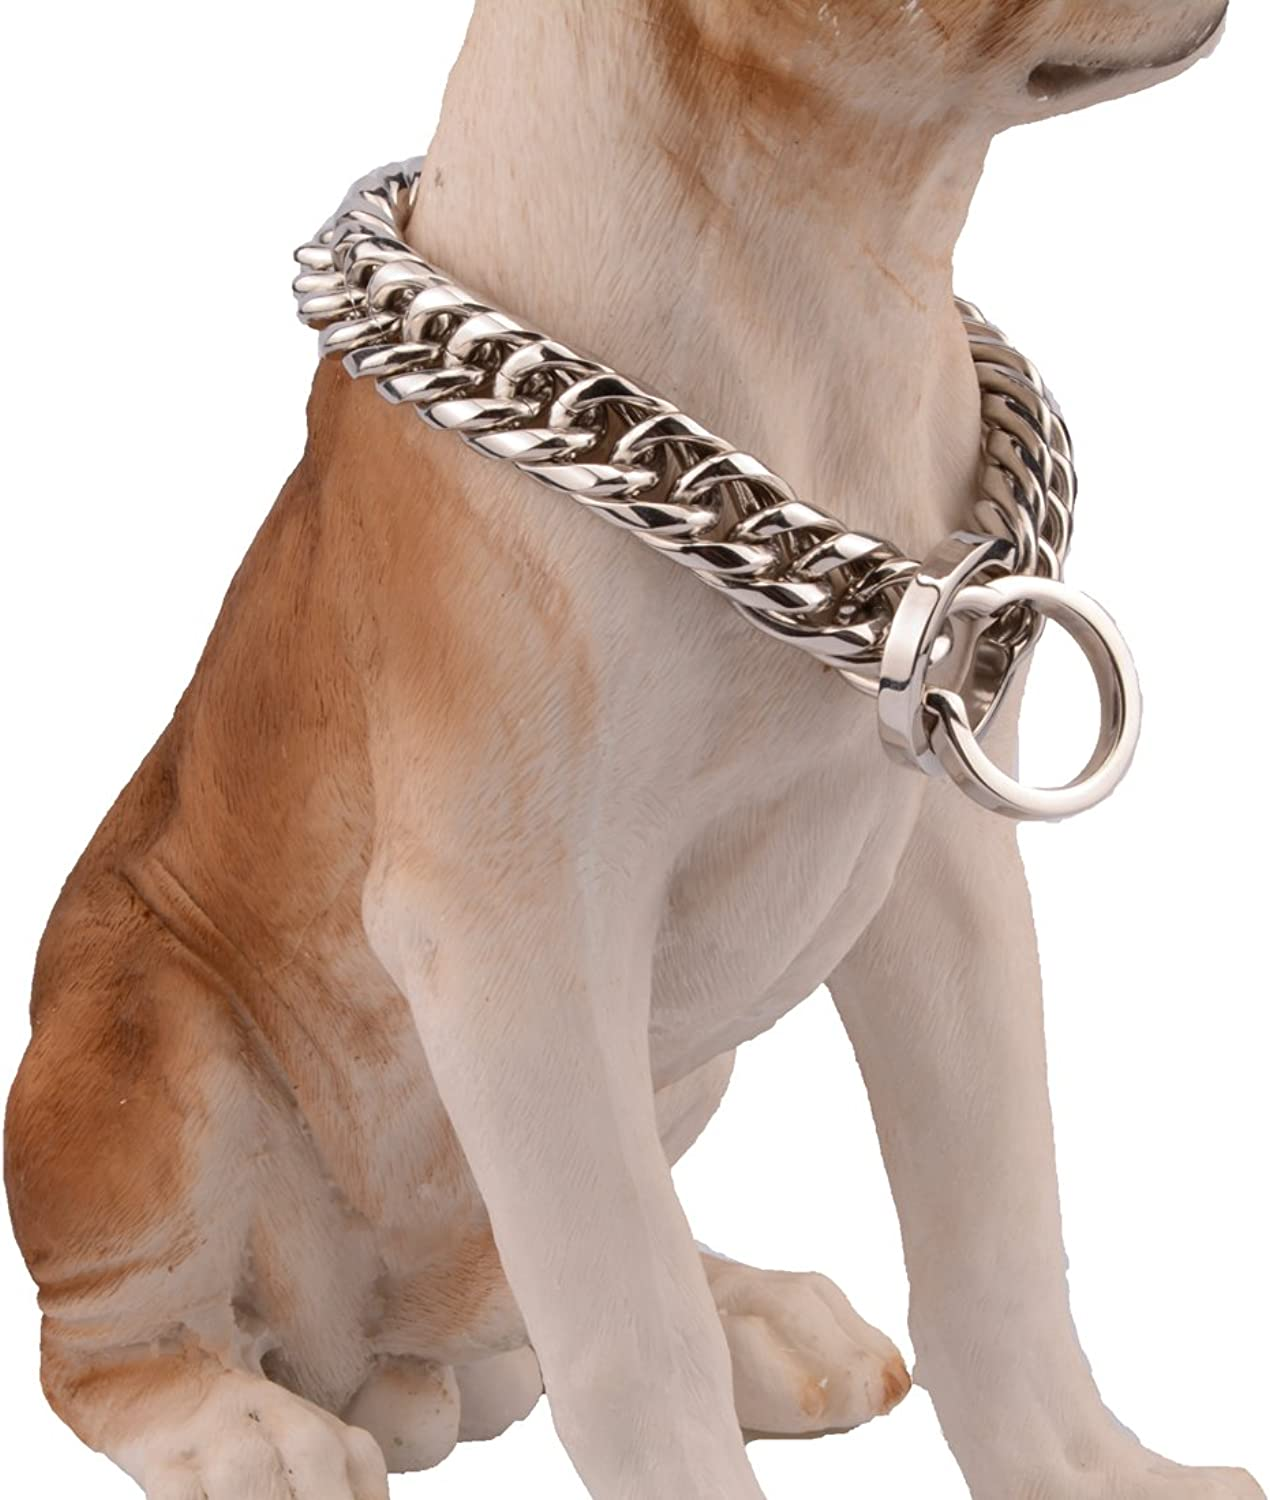 Jewelry Kingdom 1 16 18mm Wide Stainless Steel Curb Link Chain Pet Dog Choke Chain Collar Silver Tone Best Pit Bull, Mastiff, Pitbull,Bulldog, Big Breeds 1436inches (16mm Wide, 14inch)